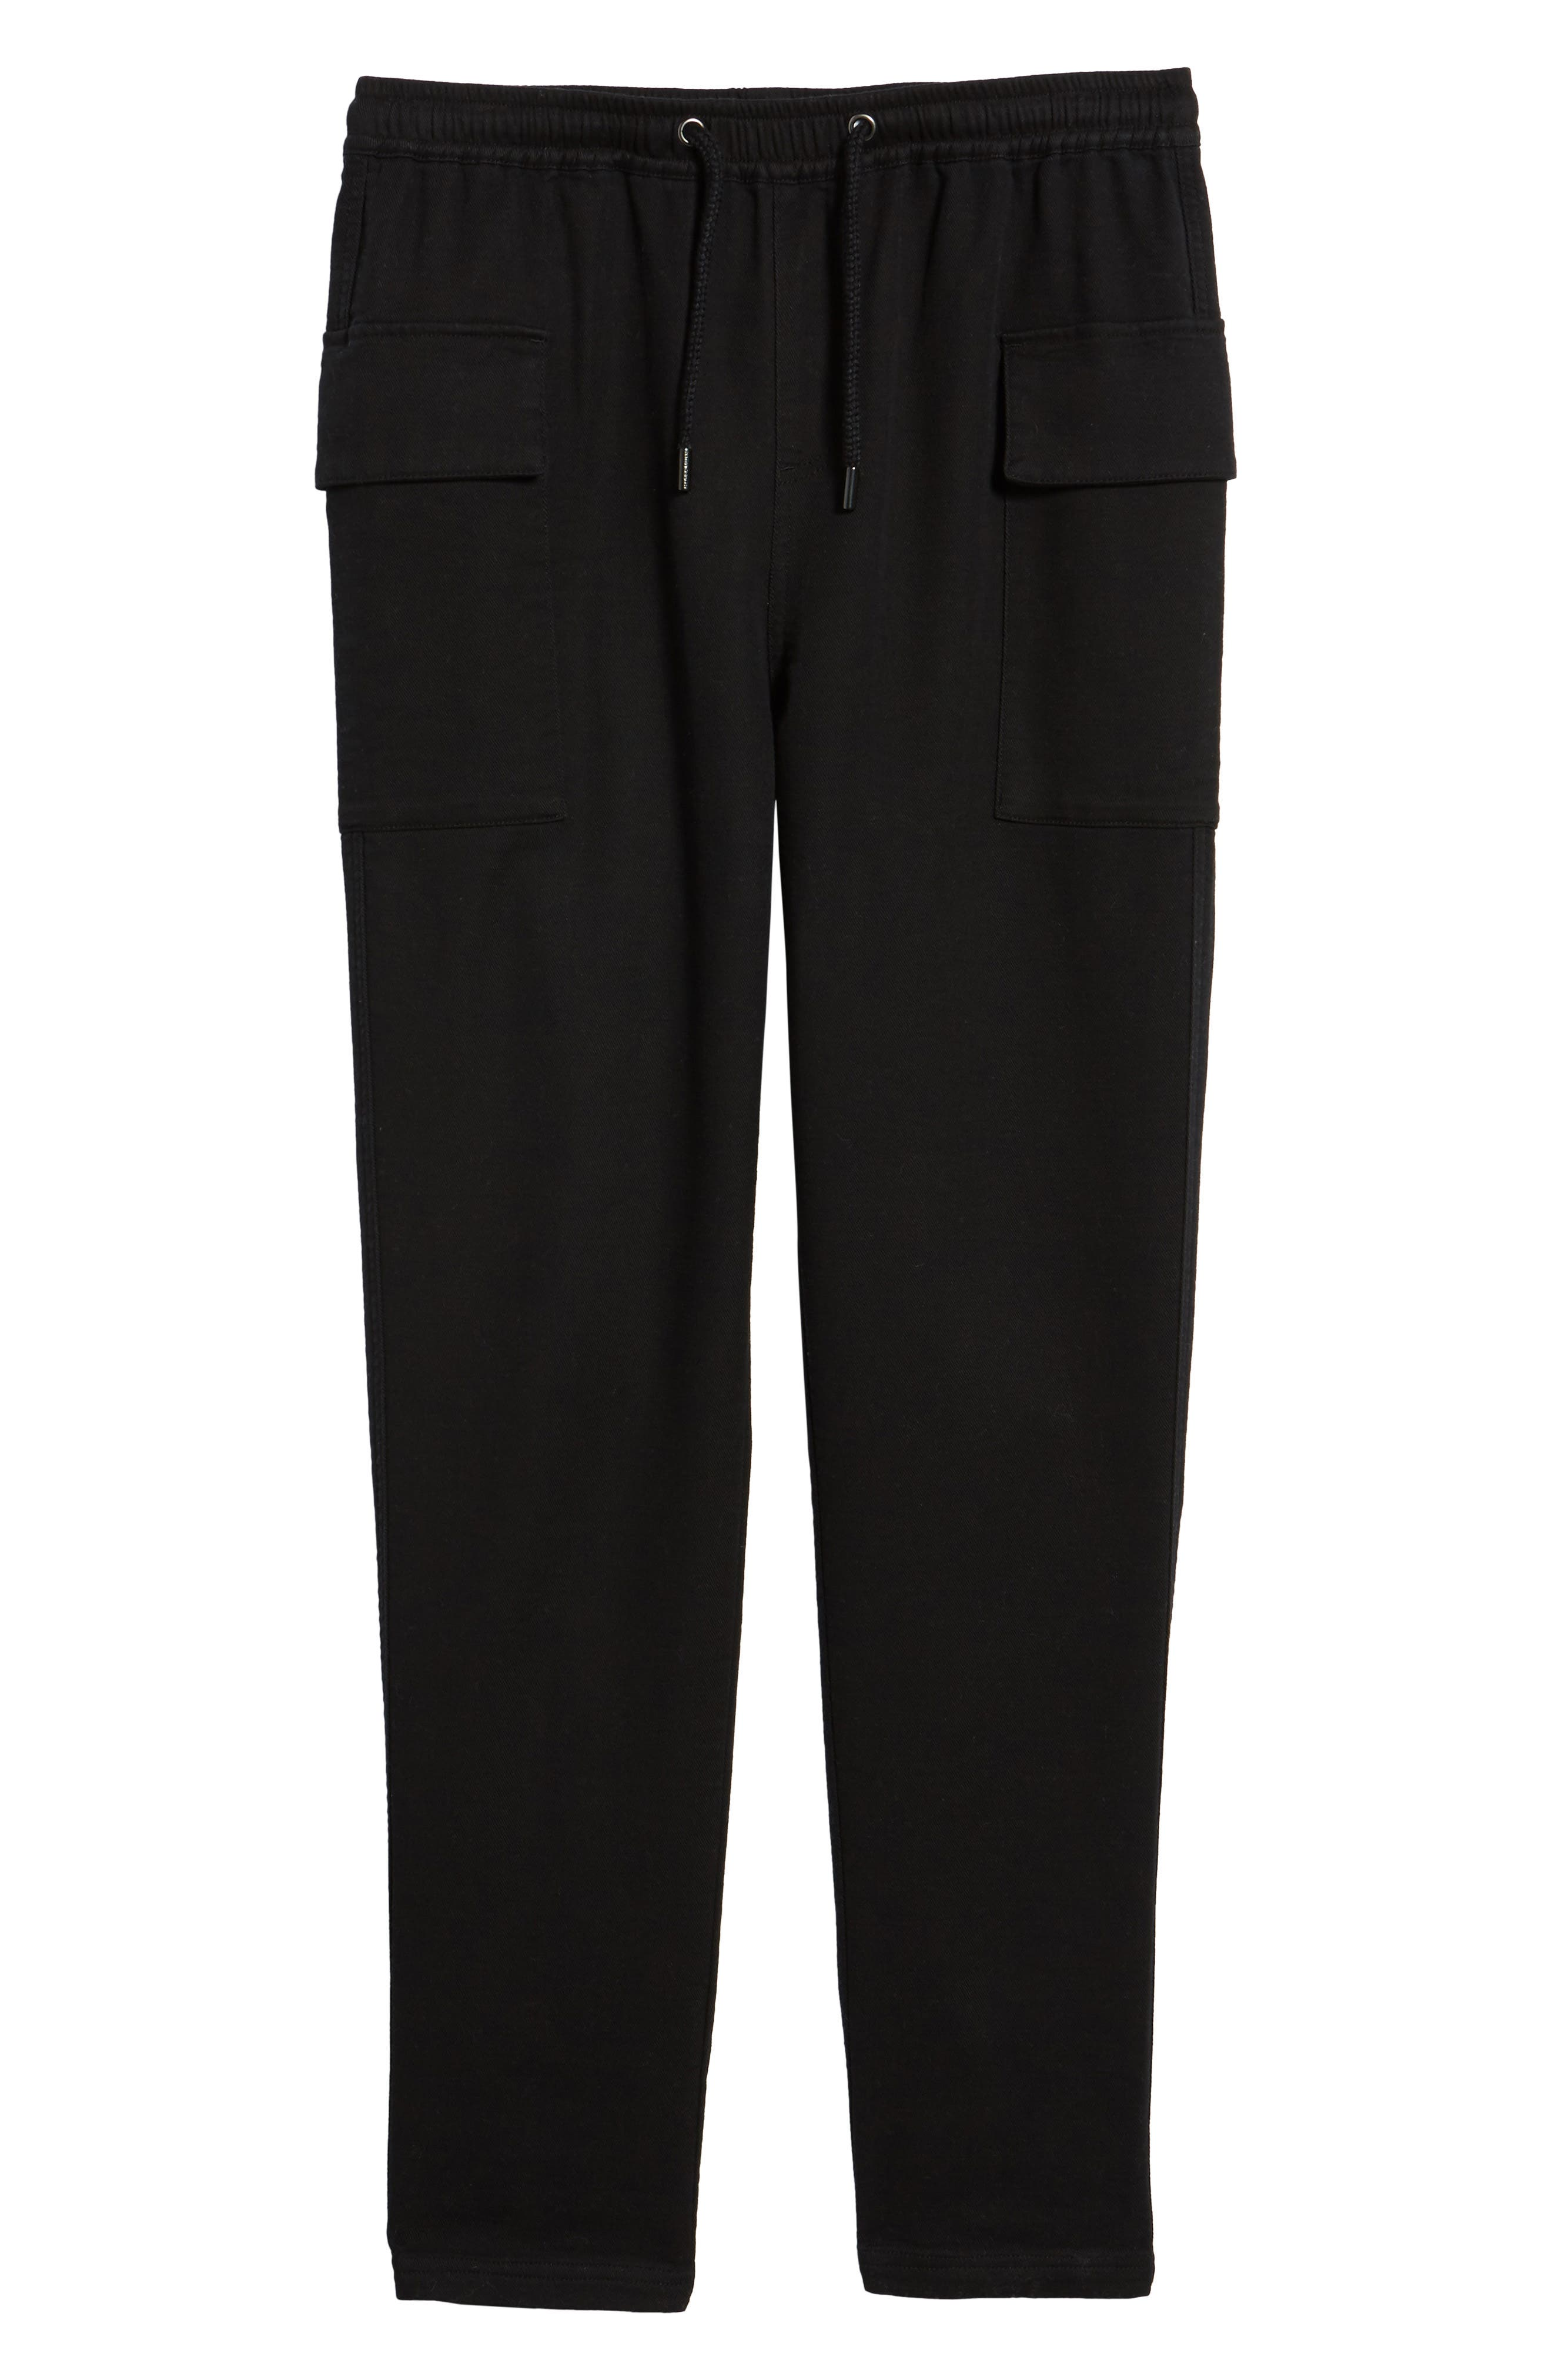 Shay Cargo Pants,                             Alternate thumbnail 6, color,                             Black